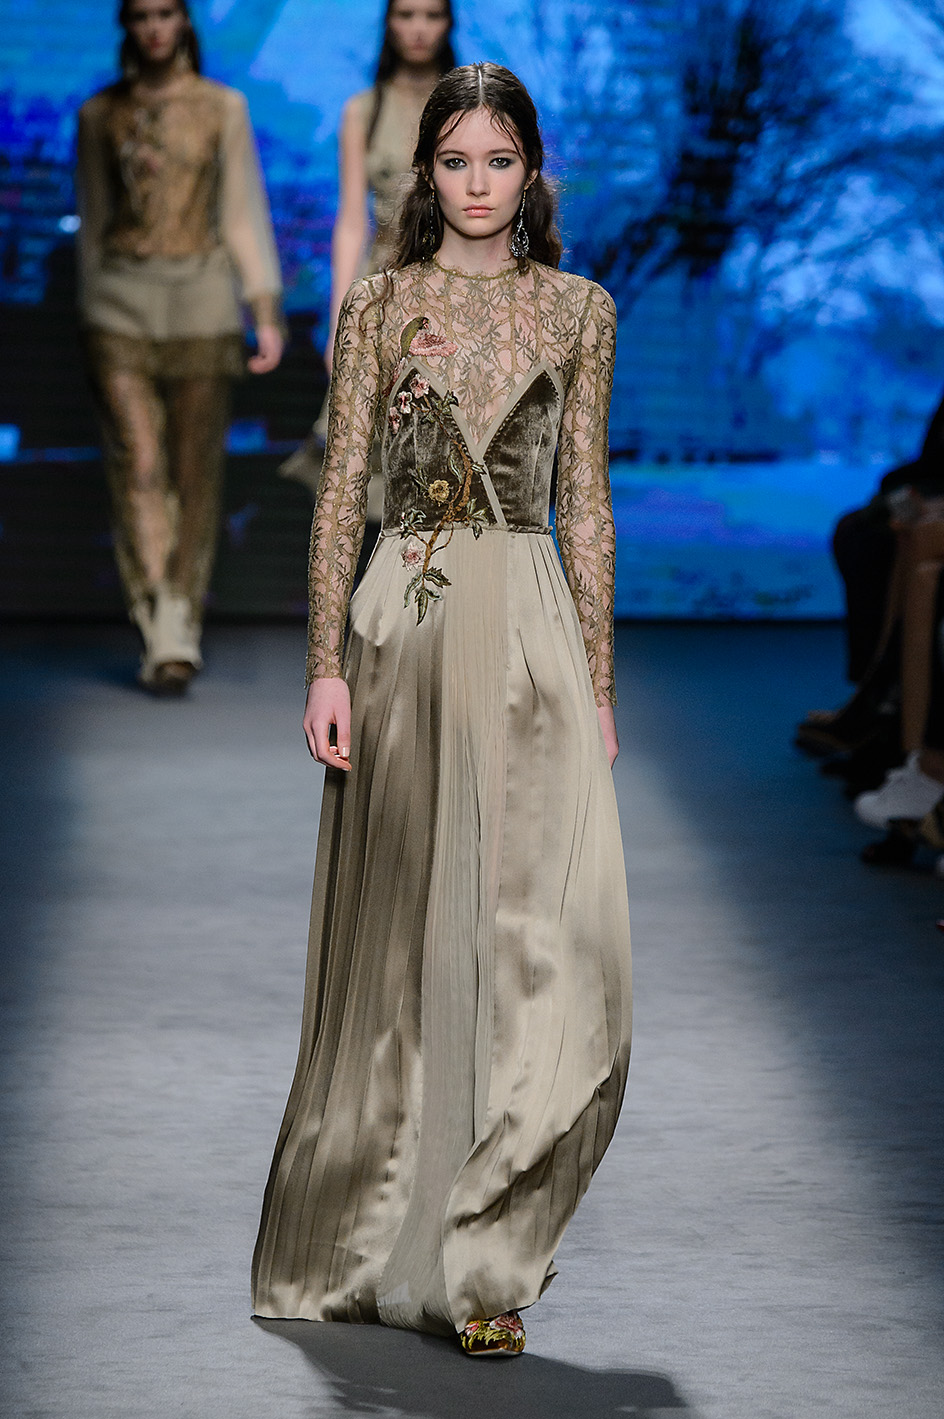 Milano Fashion week Autumn Winter 2016-17 Alberta Ferretti show